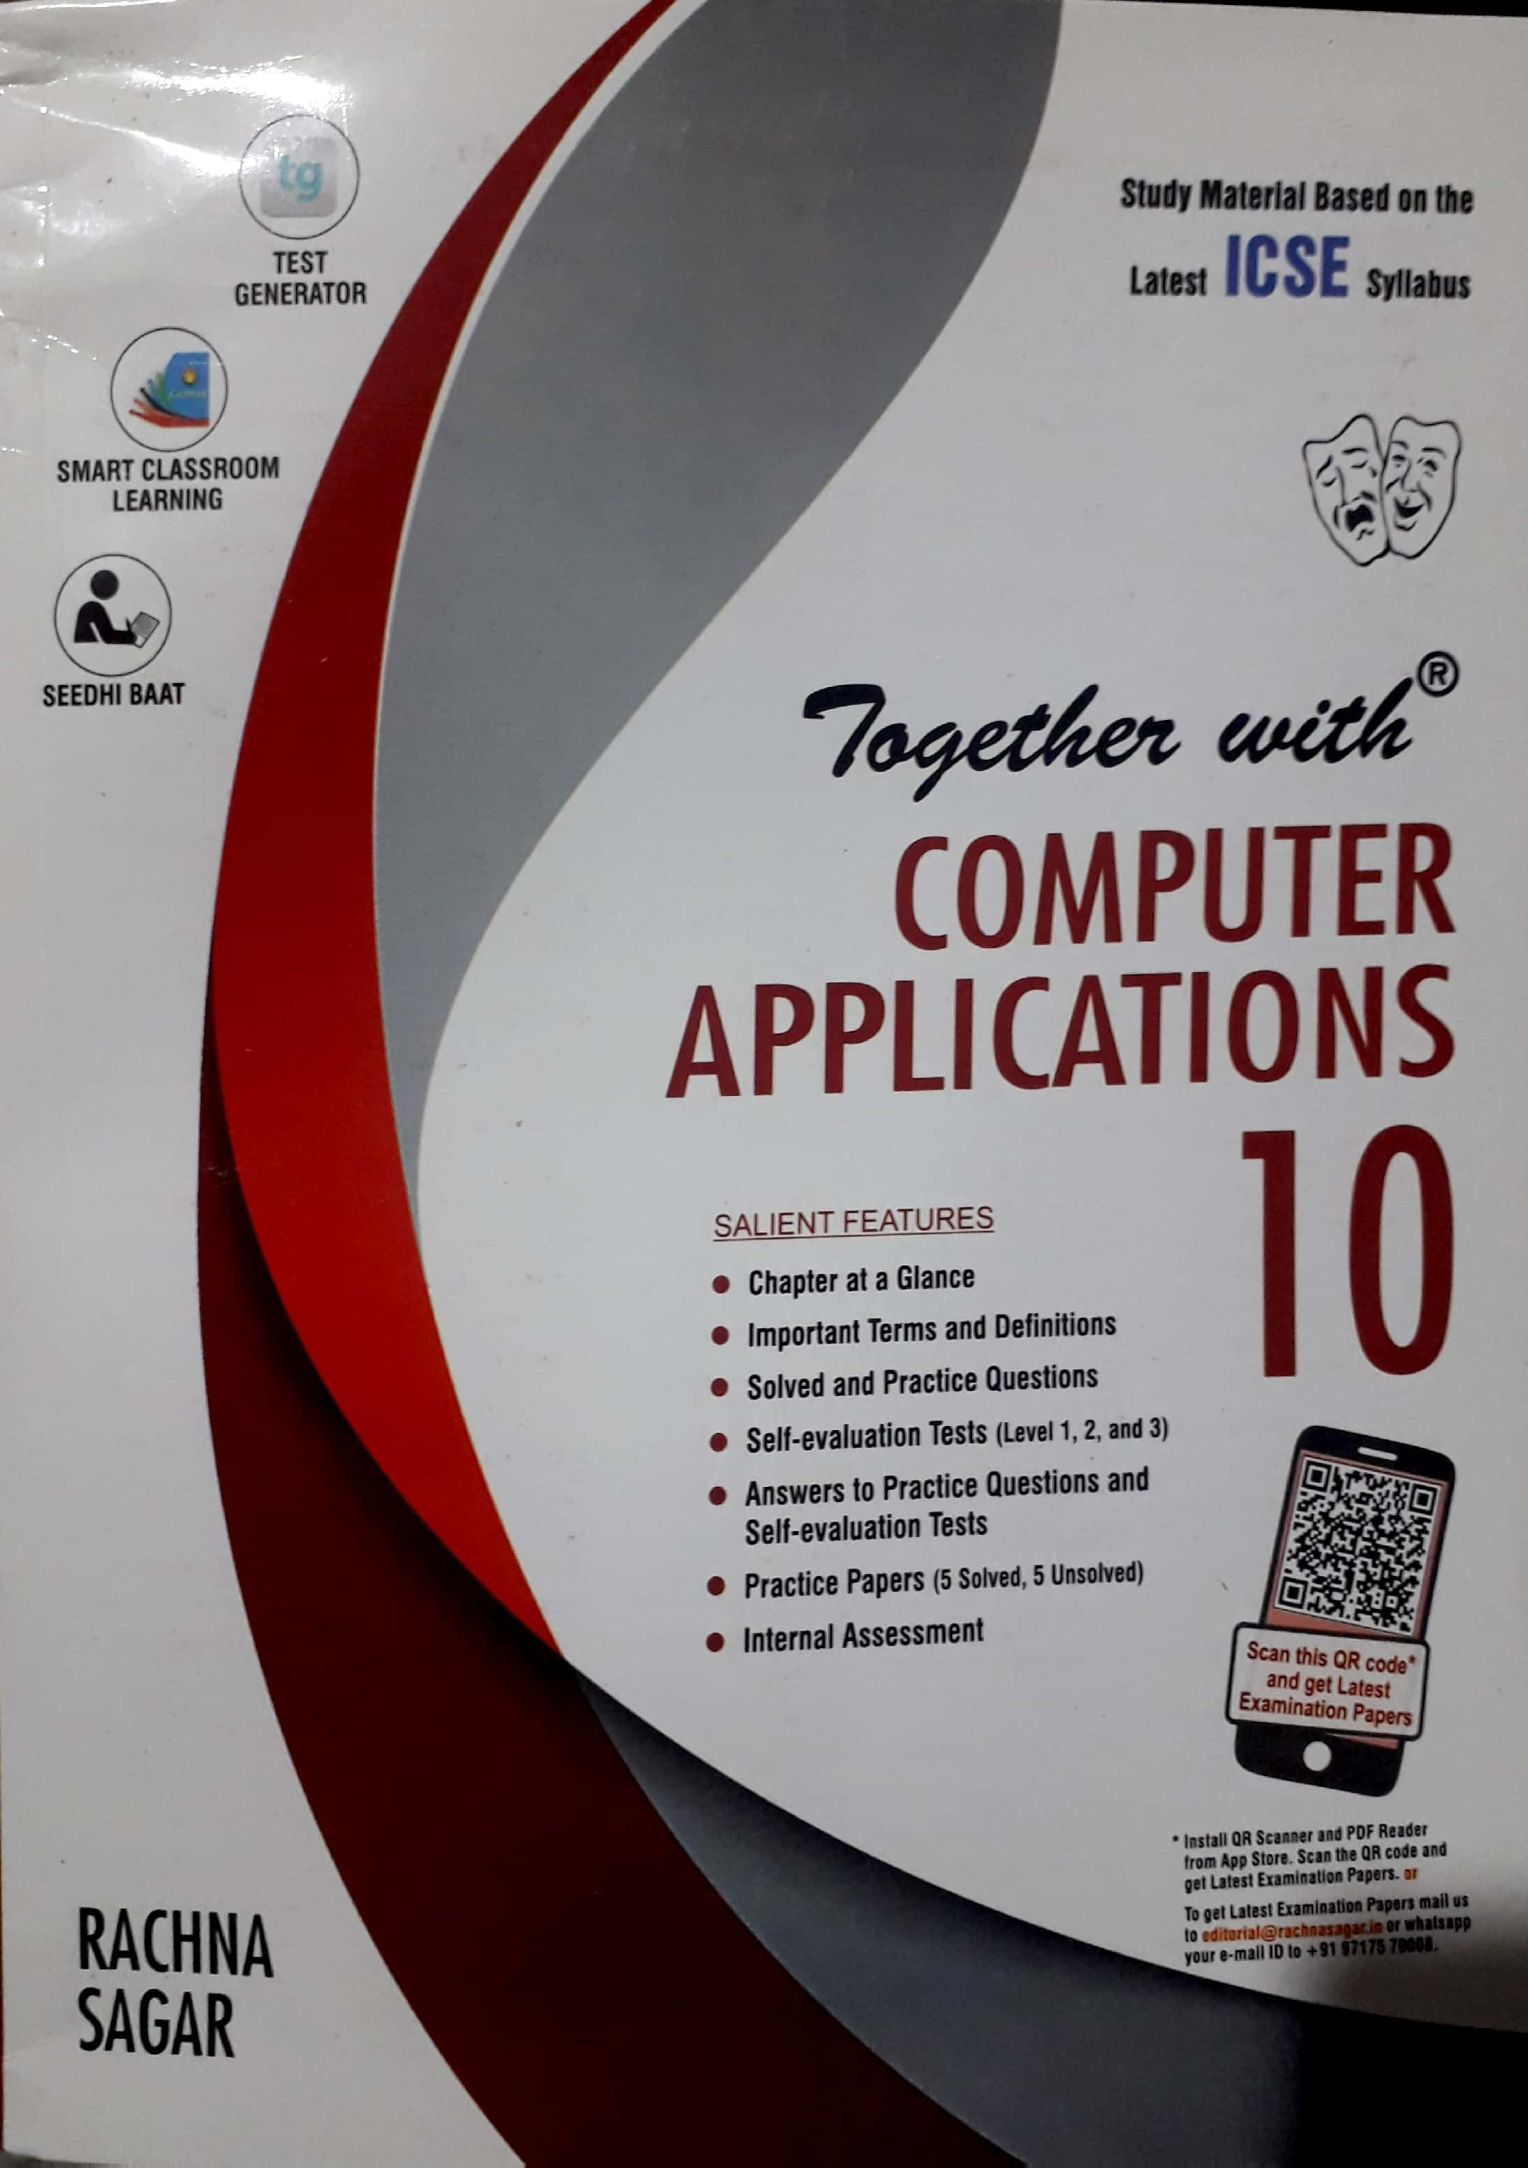 ICSE TOGETHER WITH COMPUTER APPLICATION-10